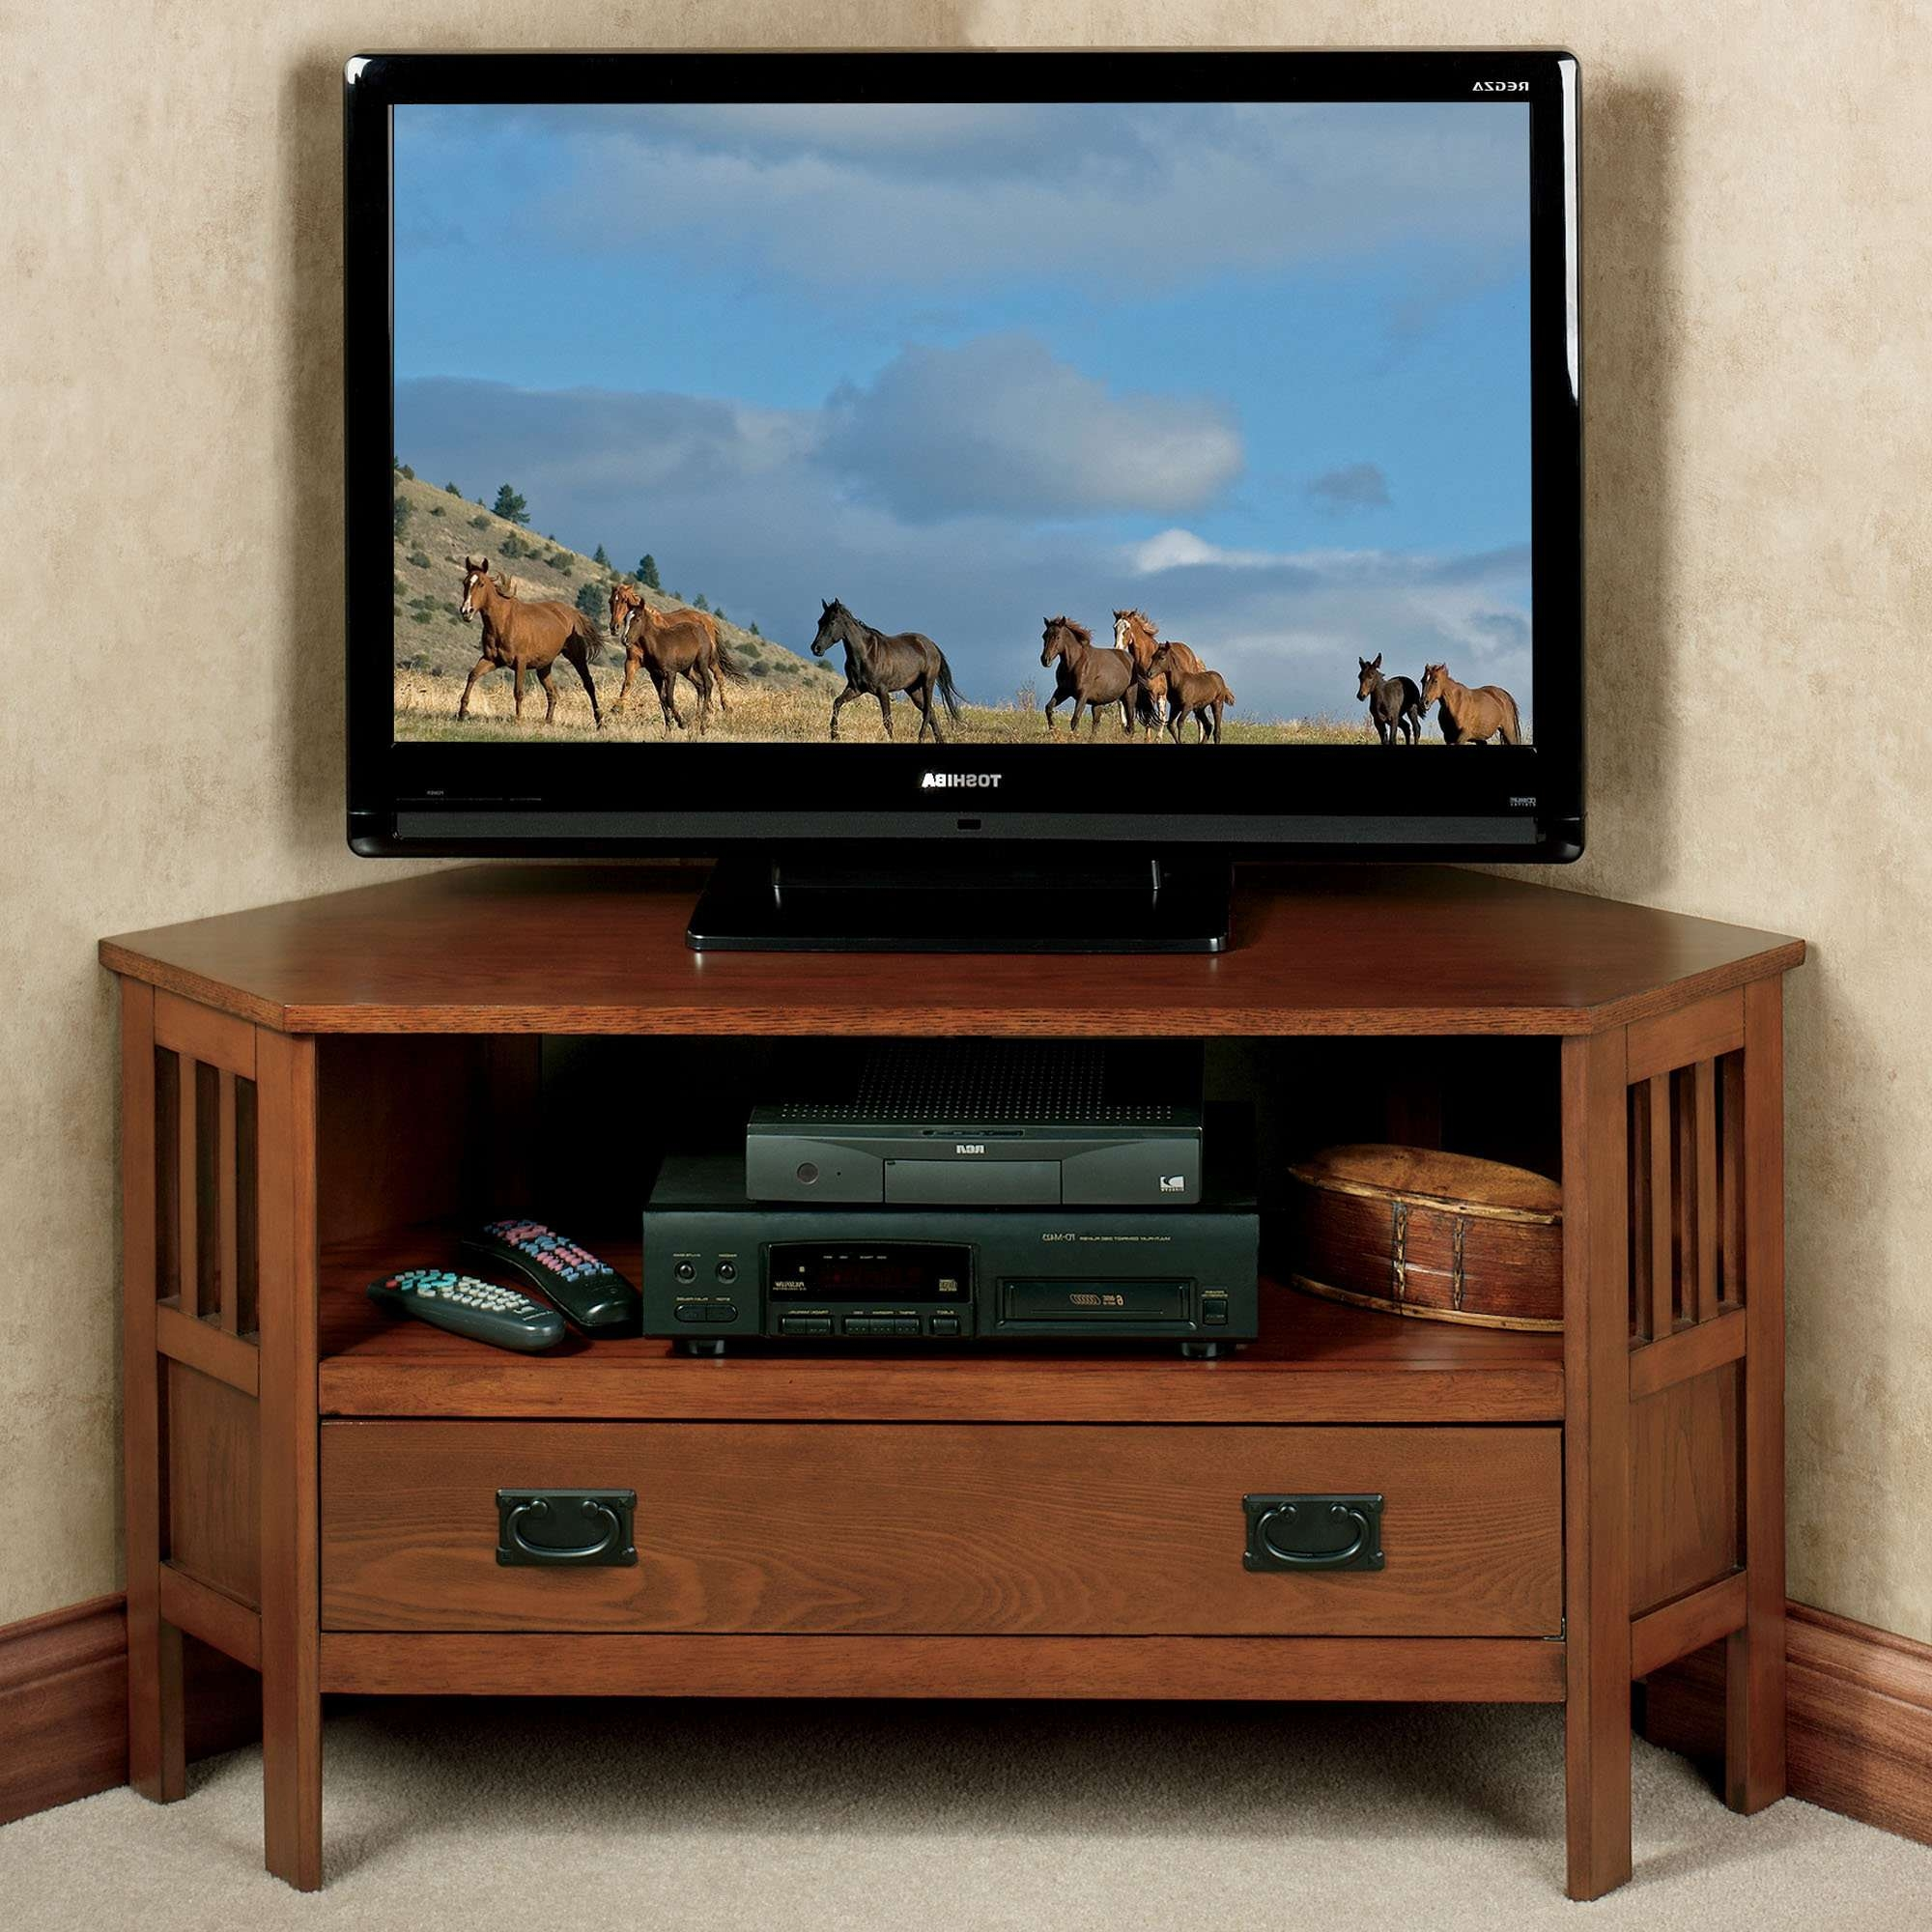 Home Decor: Alluring Wood Tv Stands For Flat Screens With Corner Inside Corner Tv Stands With Drawers (View 8 of 15)